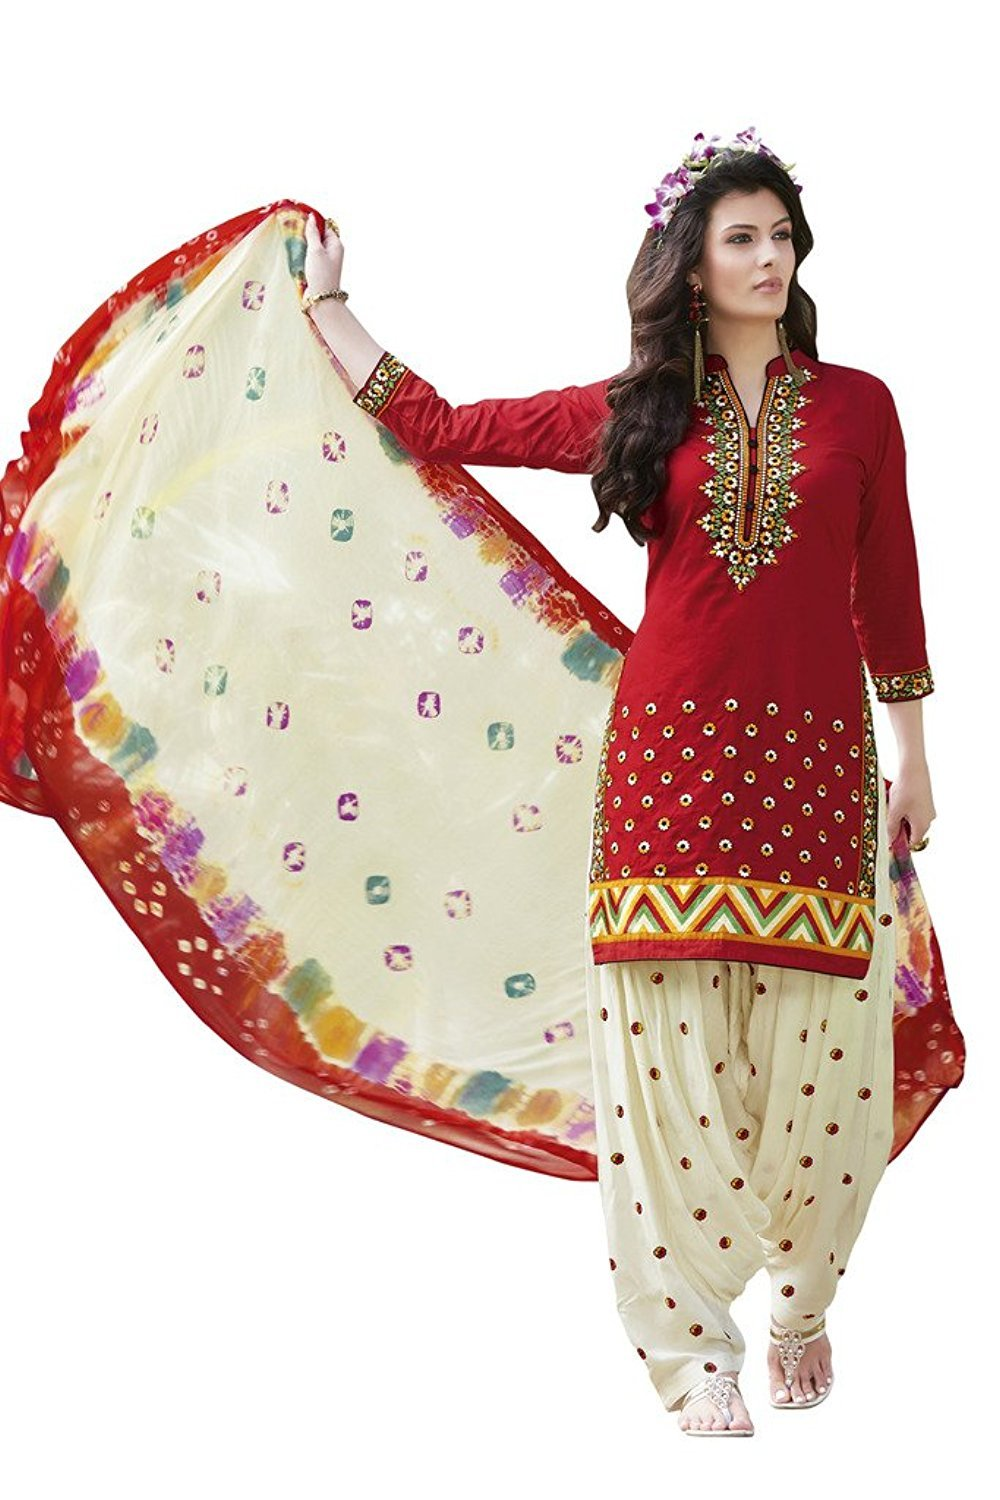 Dream Angel Fashion DreamAngel Women's Cotton Patiala Salwar Suit (Ready Made) (Medium) by Dream Angel Fashion (Image #1)